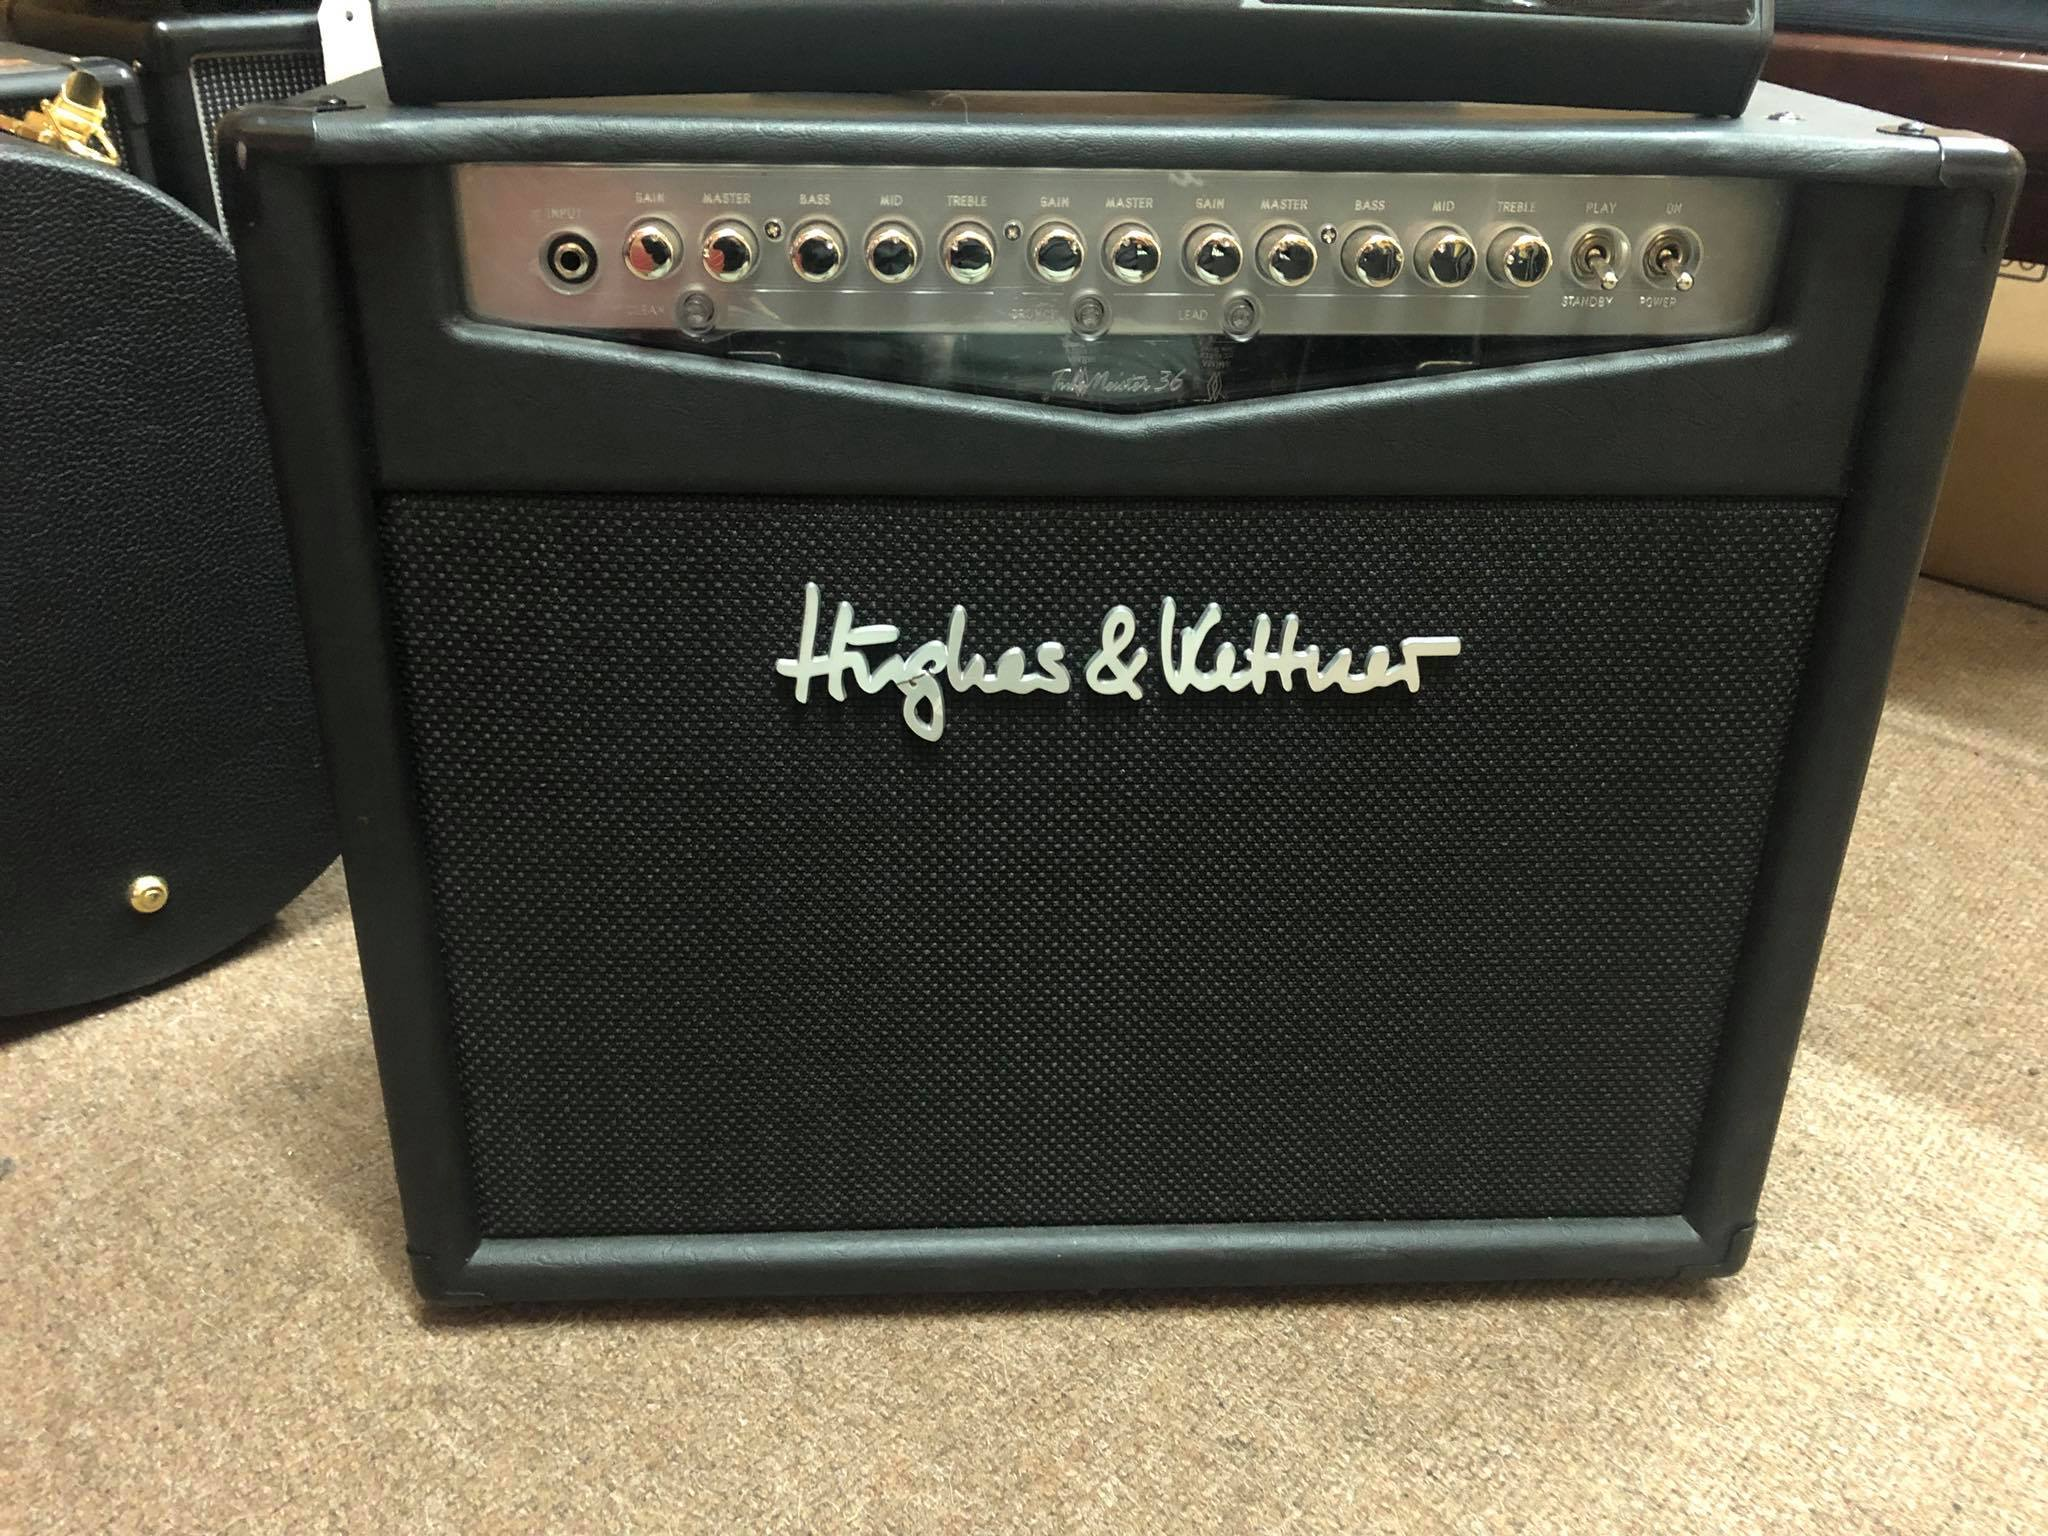 Hughes & Kettner Tube Meister 36 and Foot Controller